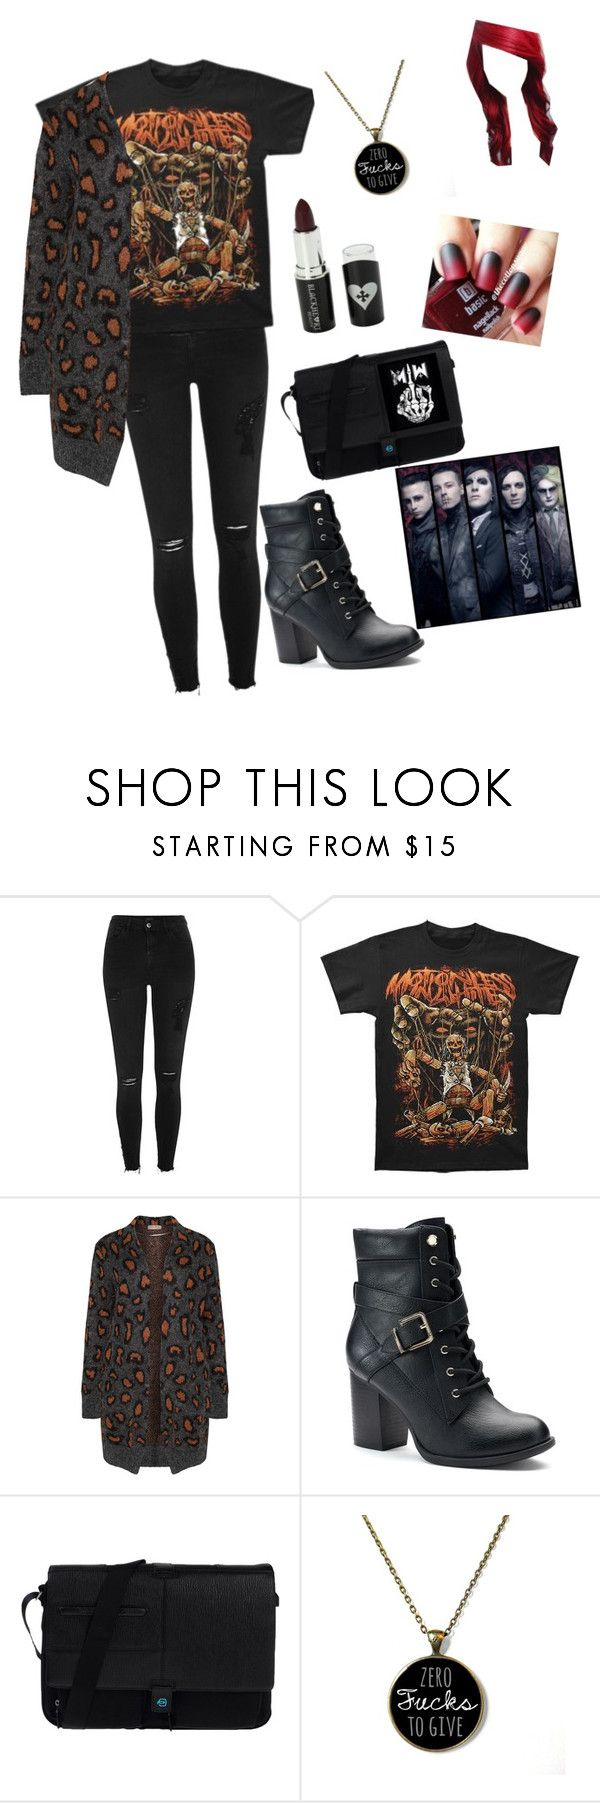 """""""Motionless"""" by eannamc2001 ❤ liked on Polyvore featuring River Island, Open End, Apt. 9, Piquadro and Voom"""